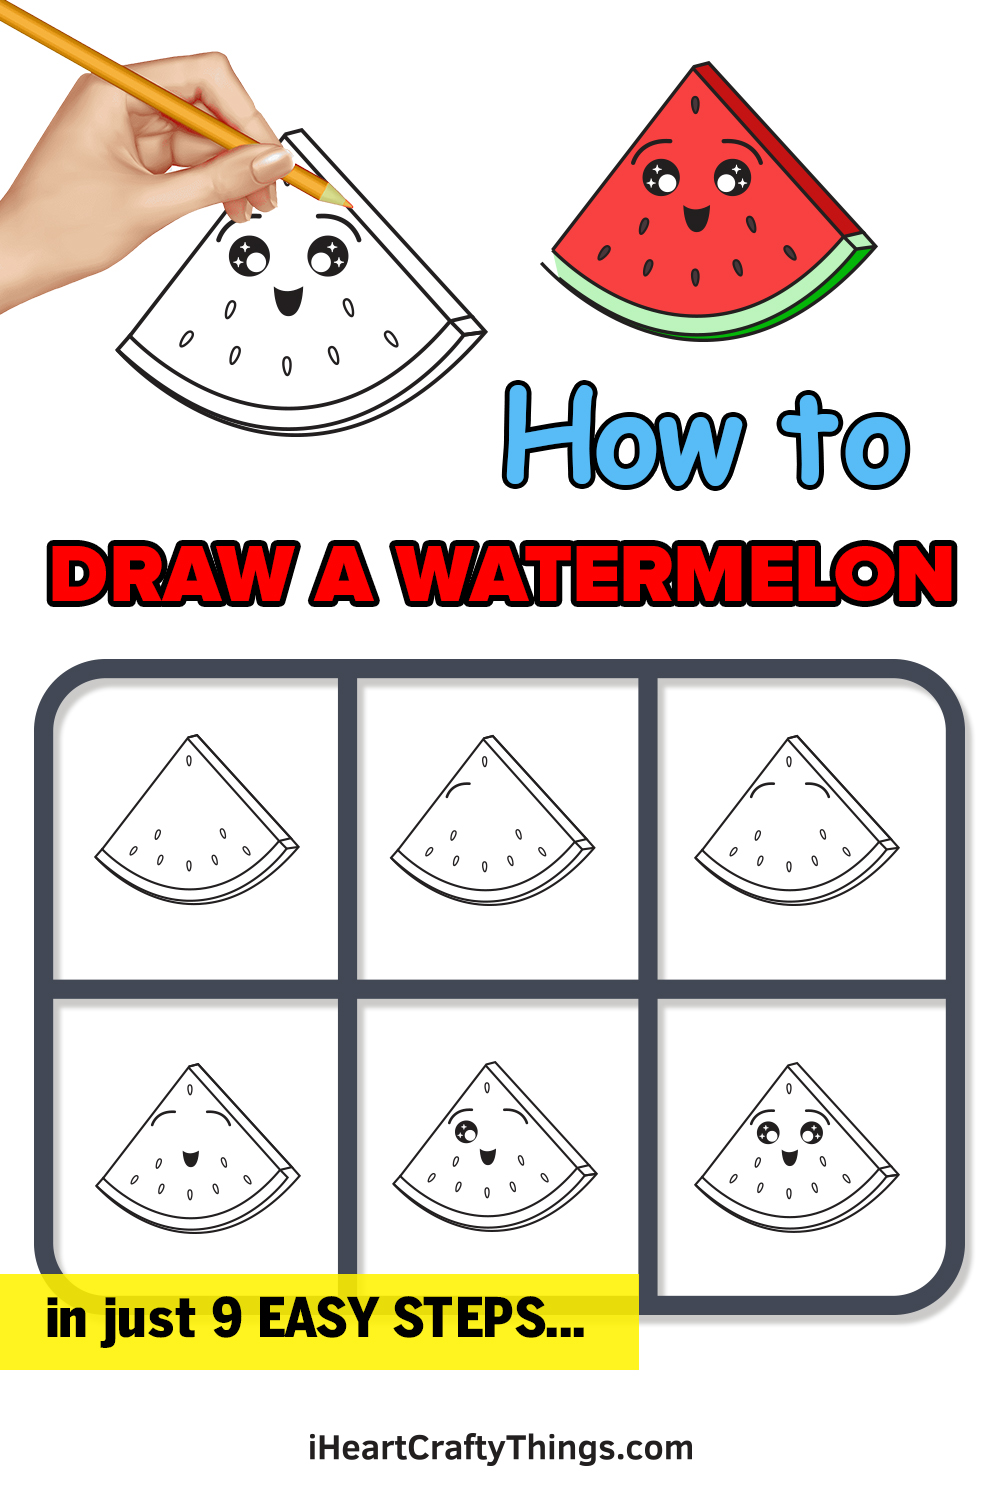 how to draw a watermelon in 9 easy steps